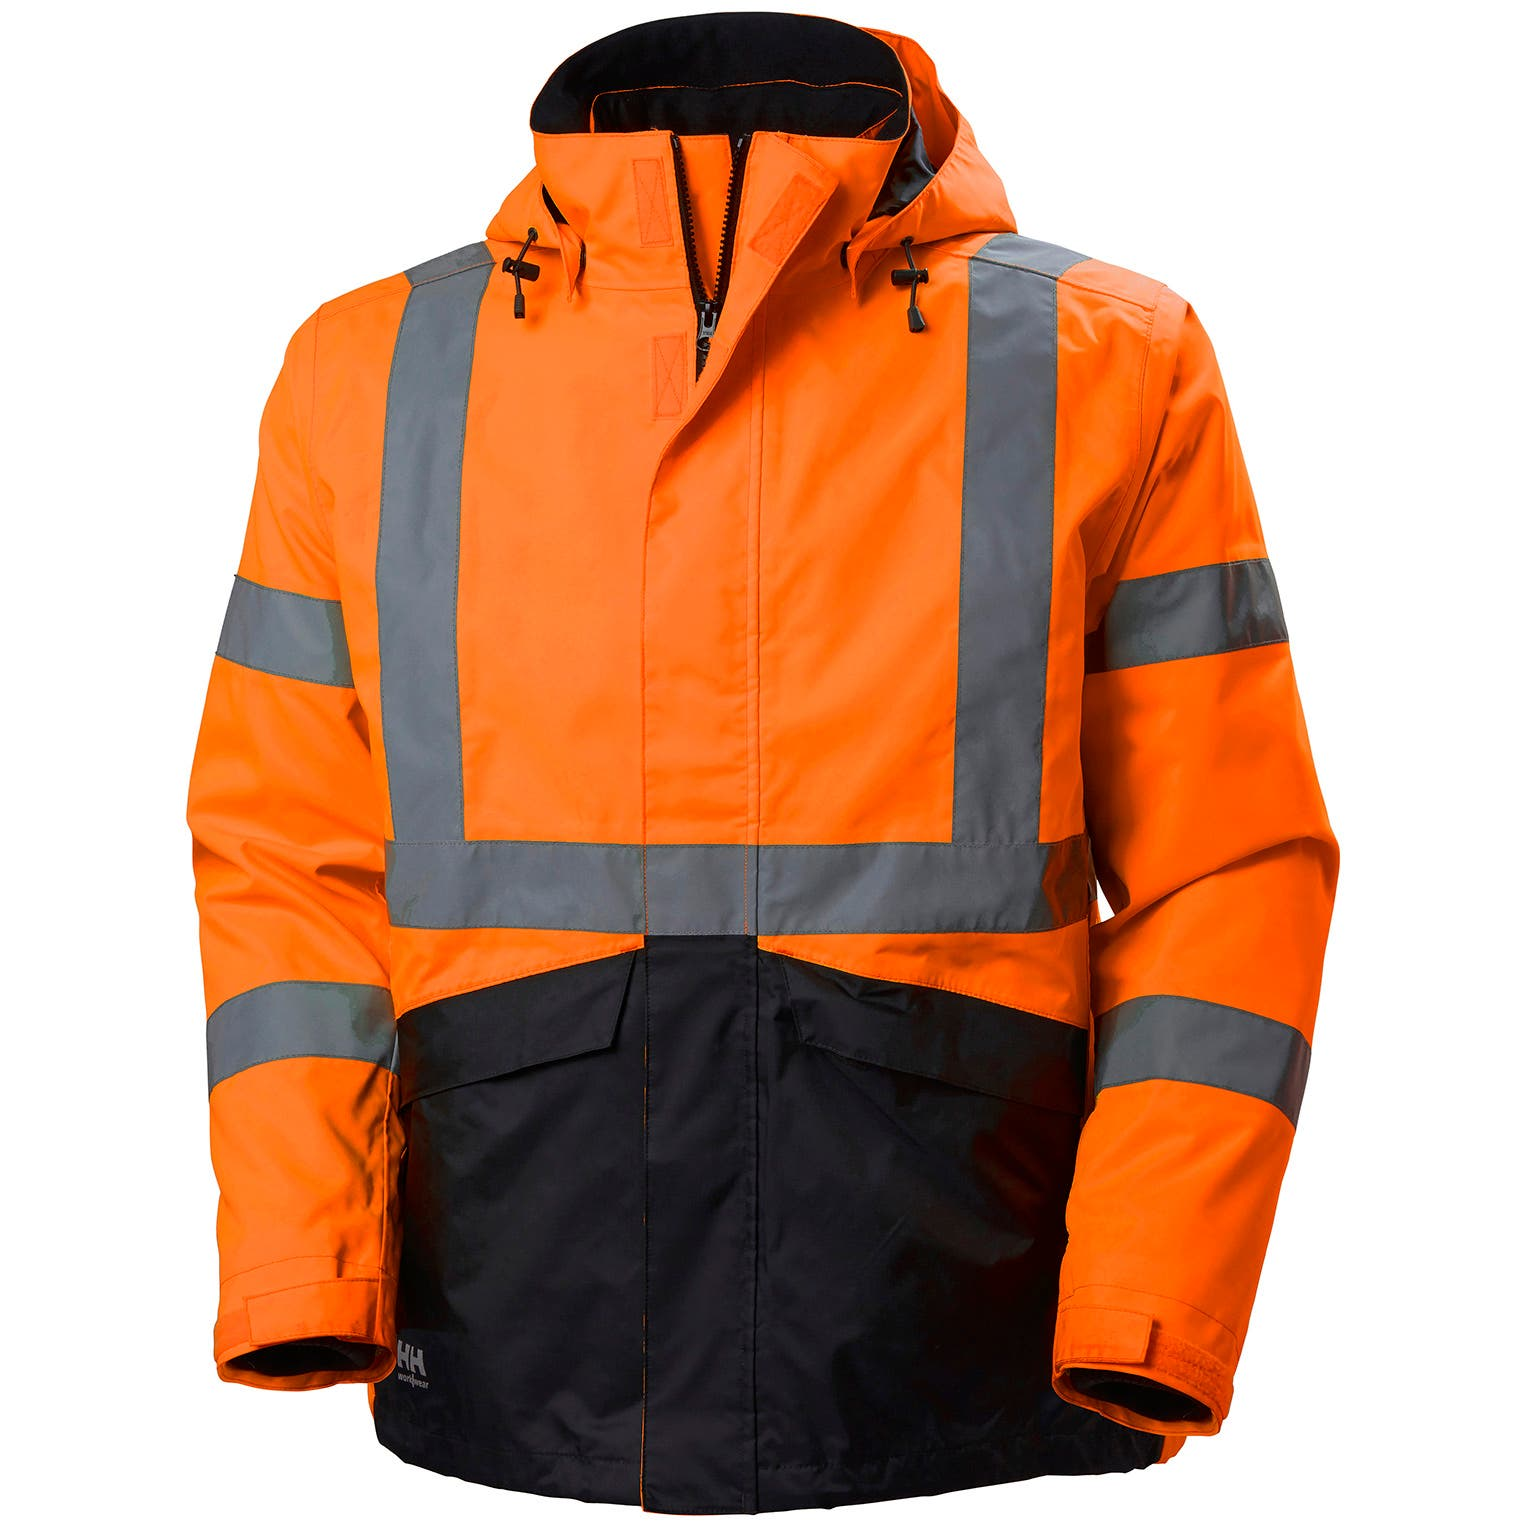 Helly Hansen Men's Alta Hi Vis Class 3 Shell Jacket in HV Orange/Charcoal from the front